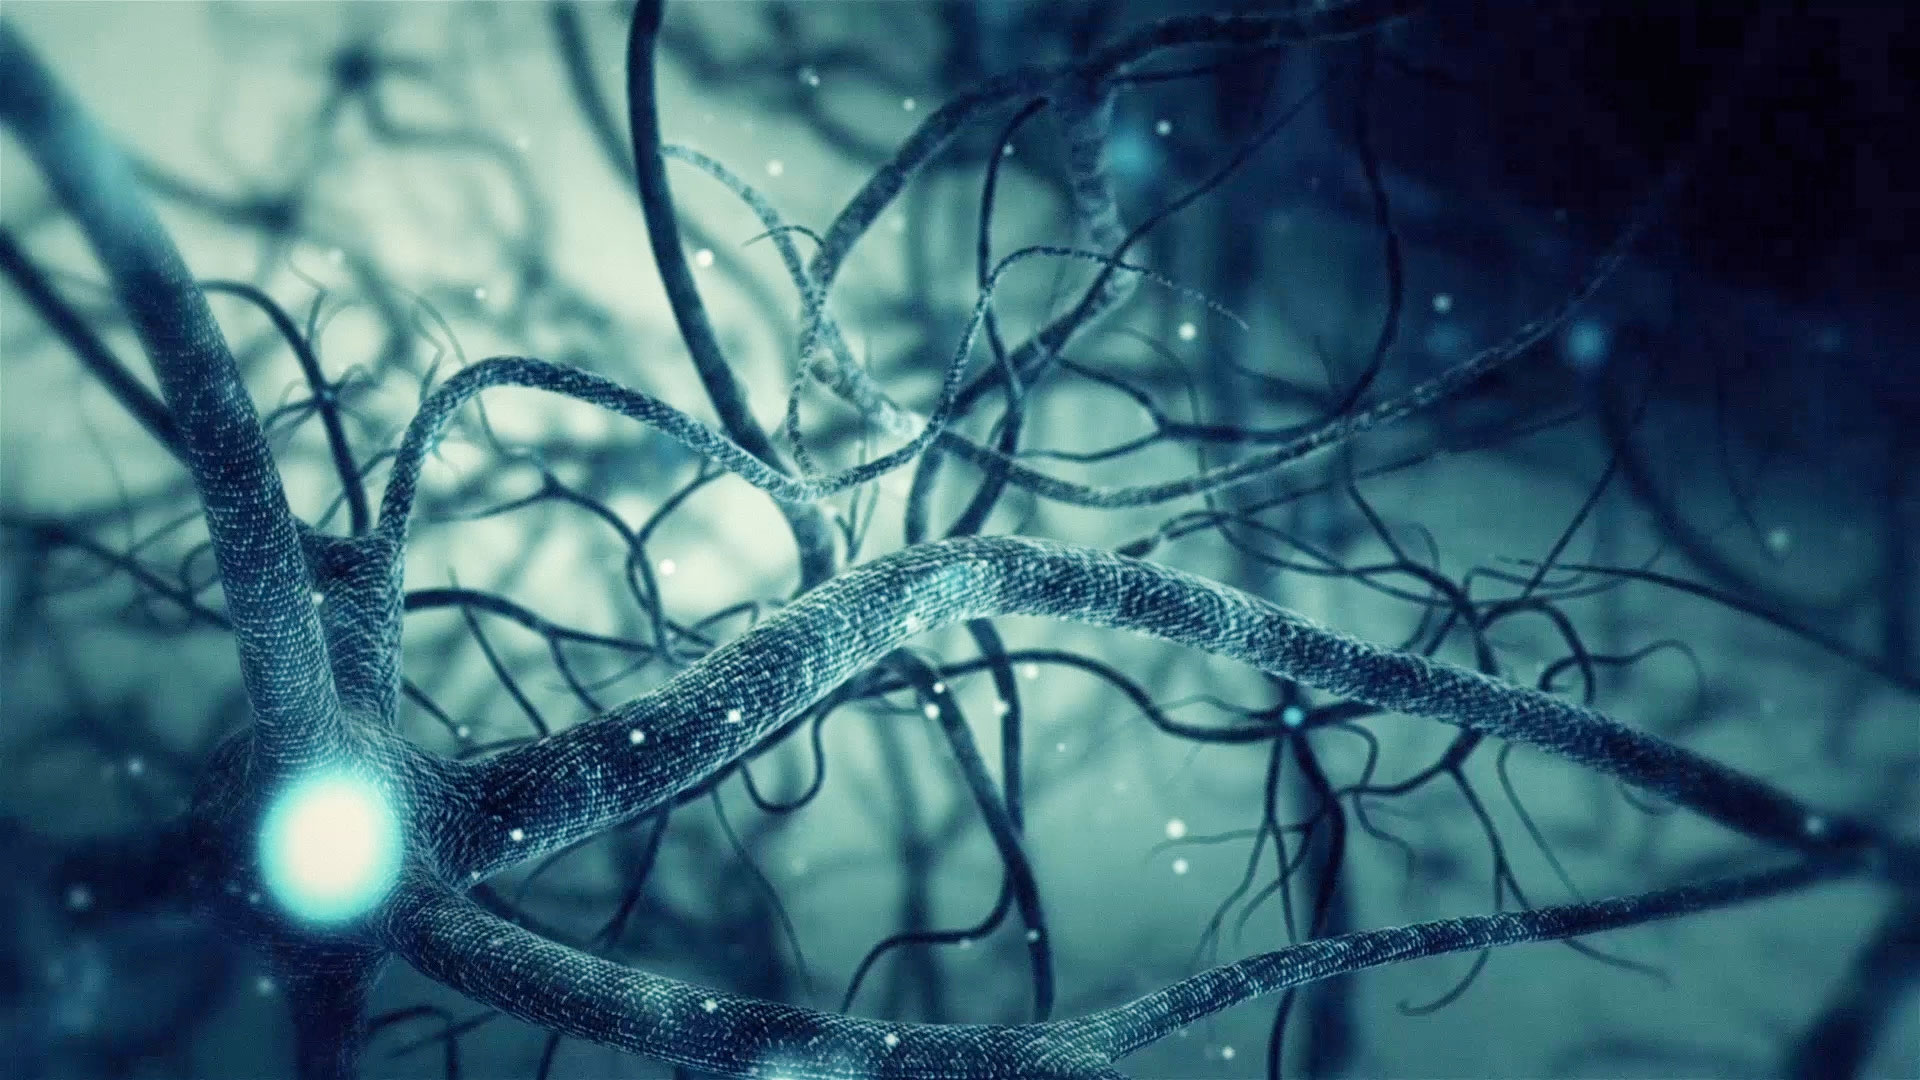 Green neuron synapse network 3d animation infinite loop - Brain wallpaper 3d ...